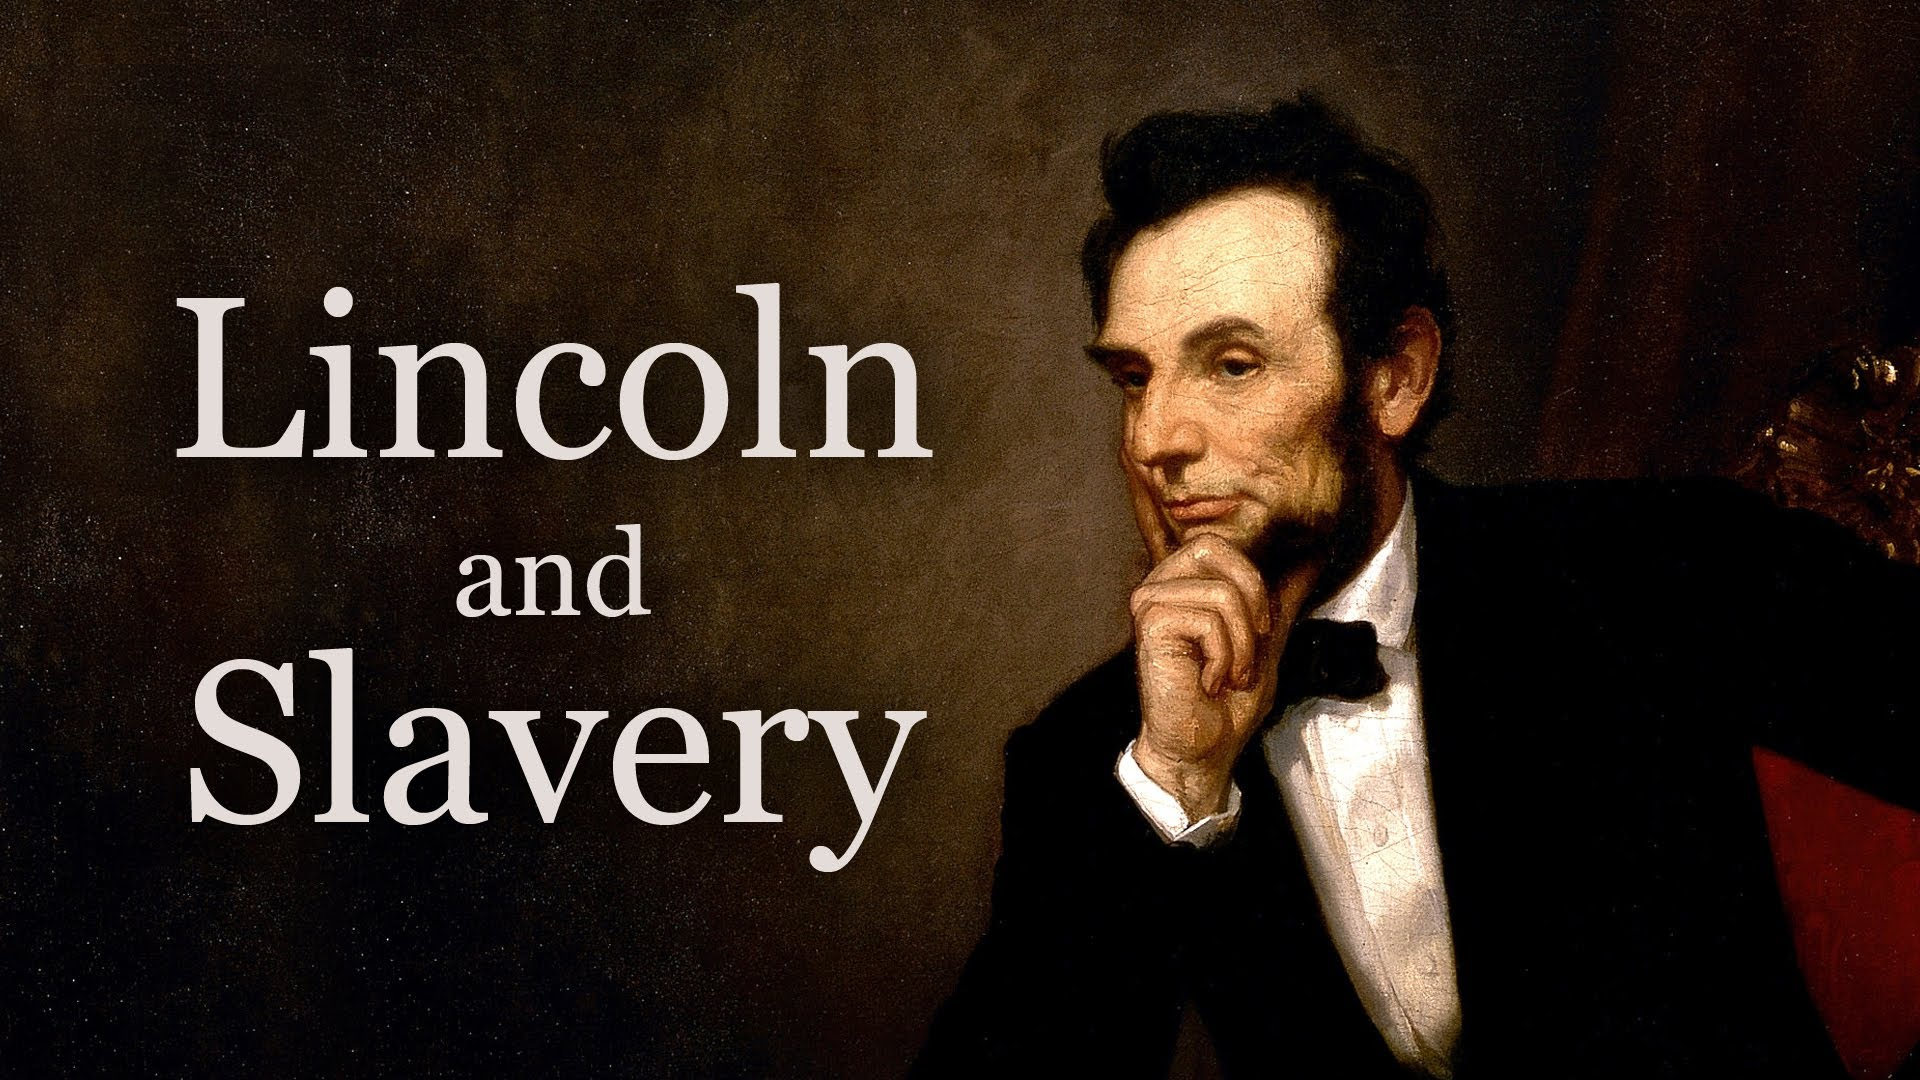 Abraham Lincoln - Views on Slavery